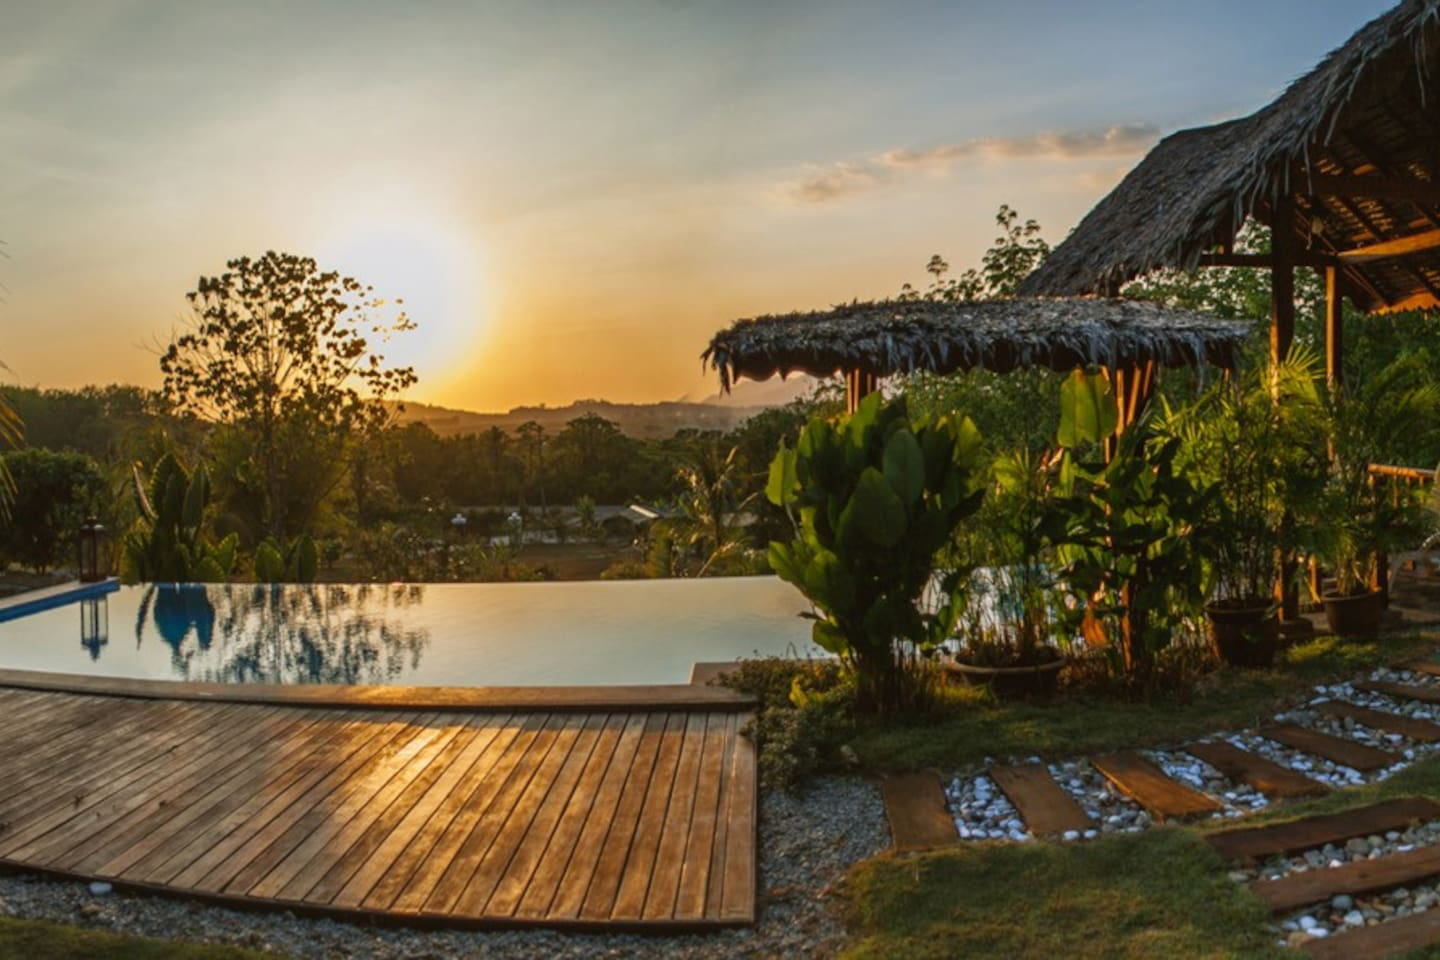 Garden and pool at sunset